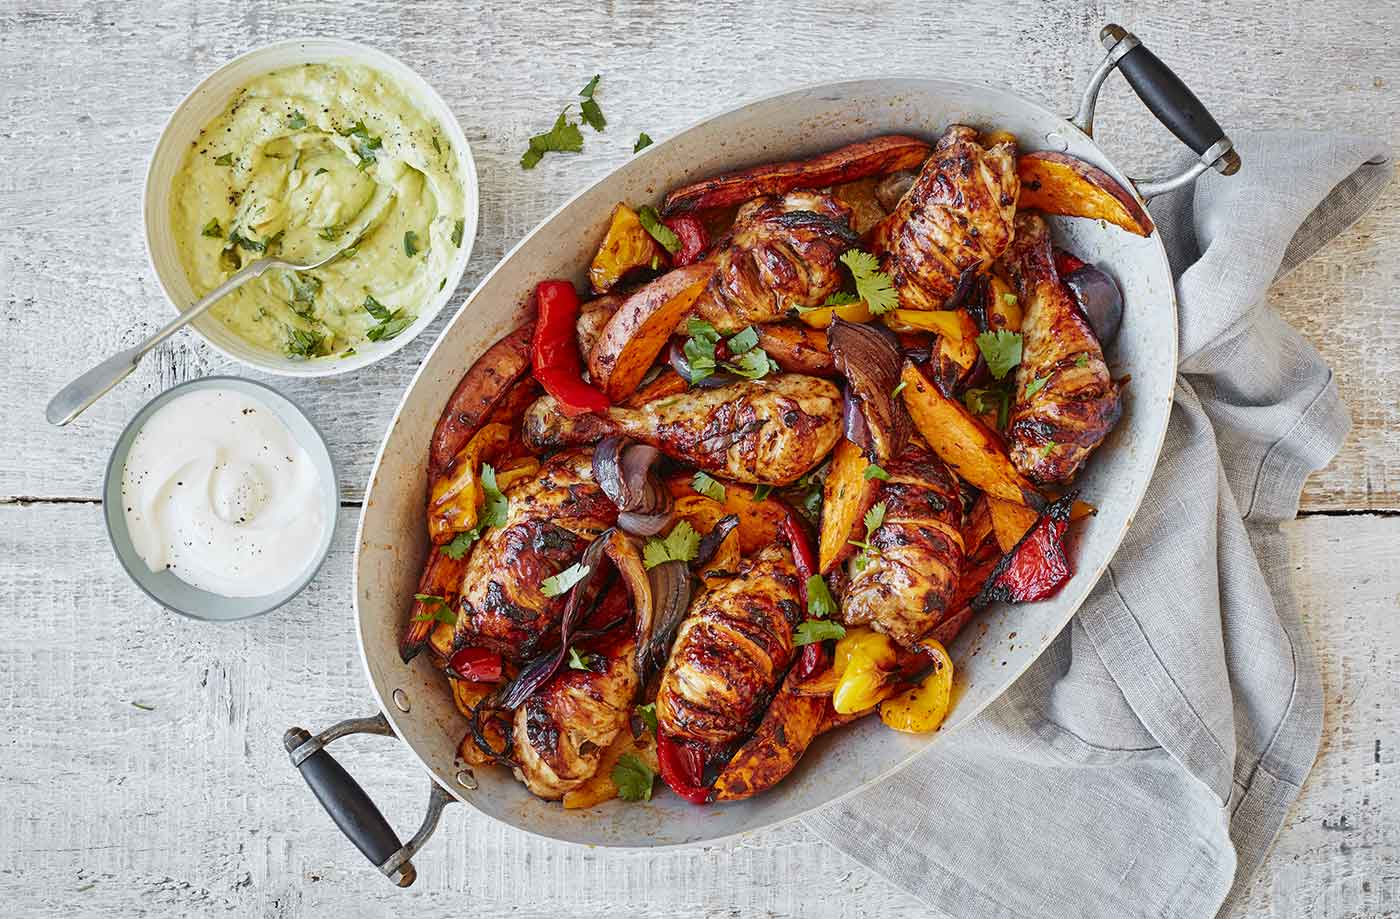 Smoky Mexican chicken traybake